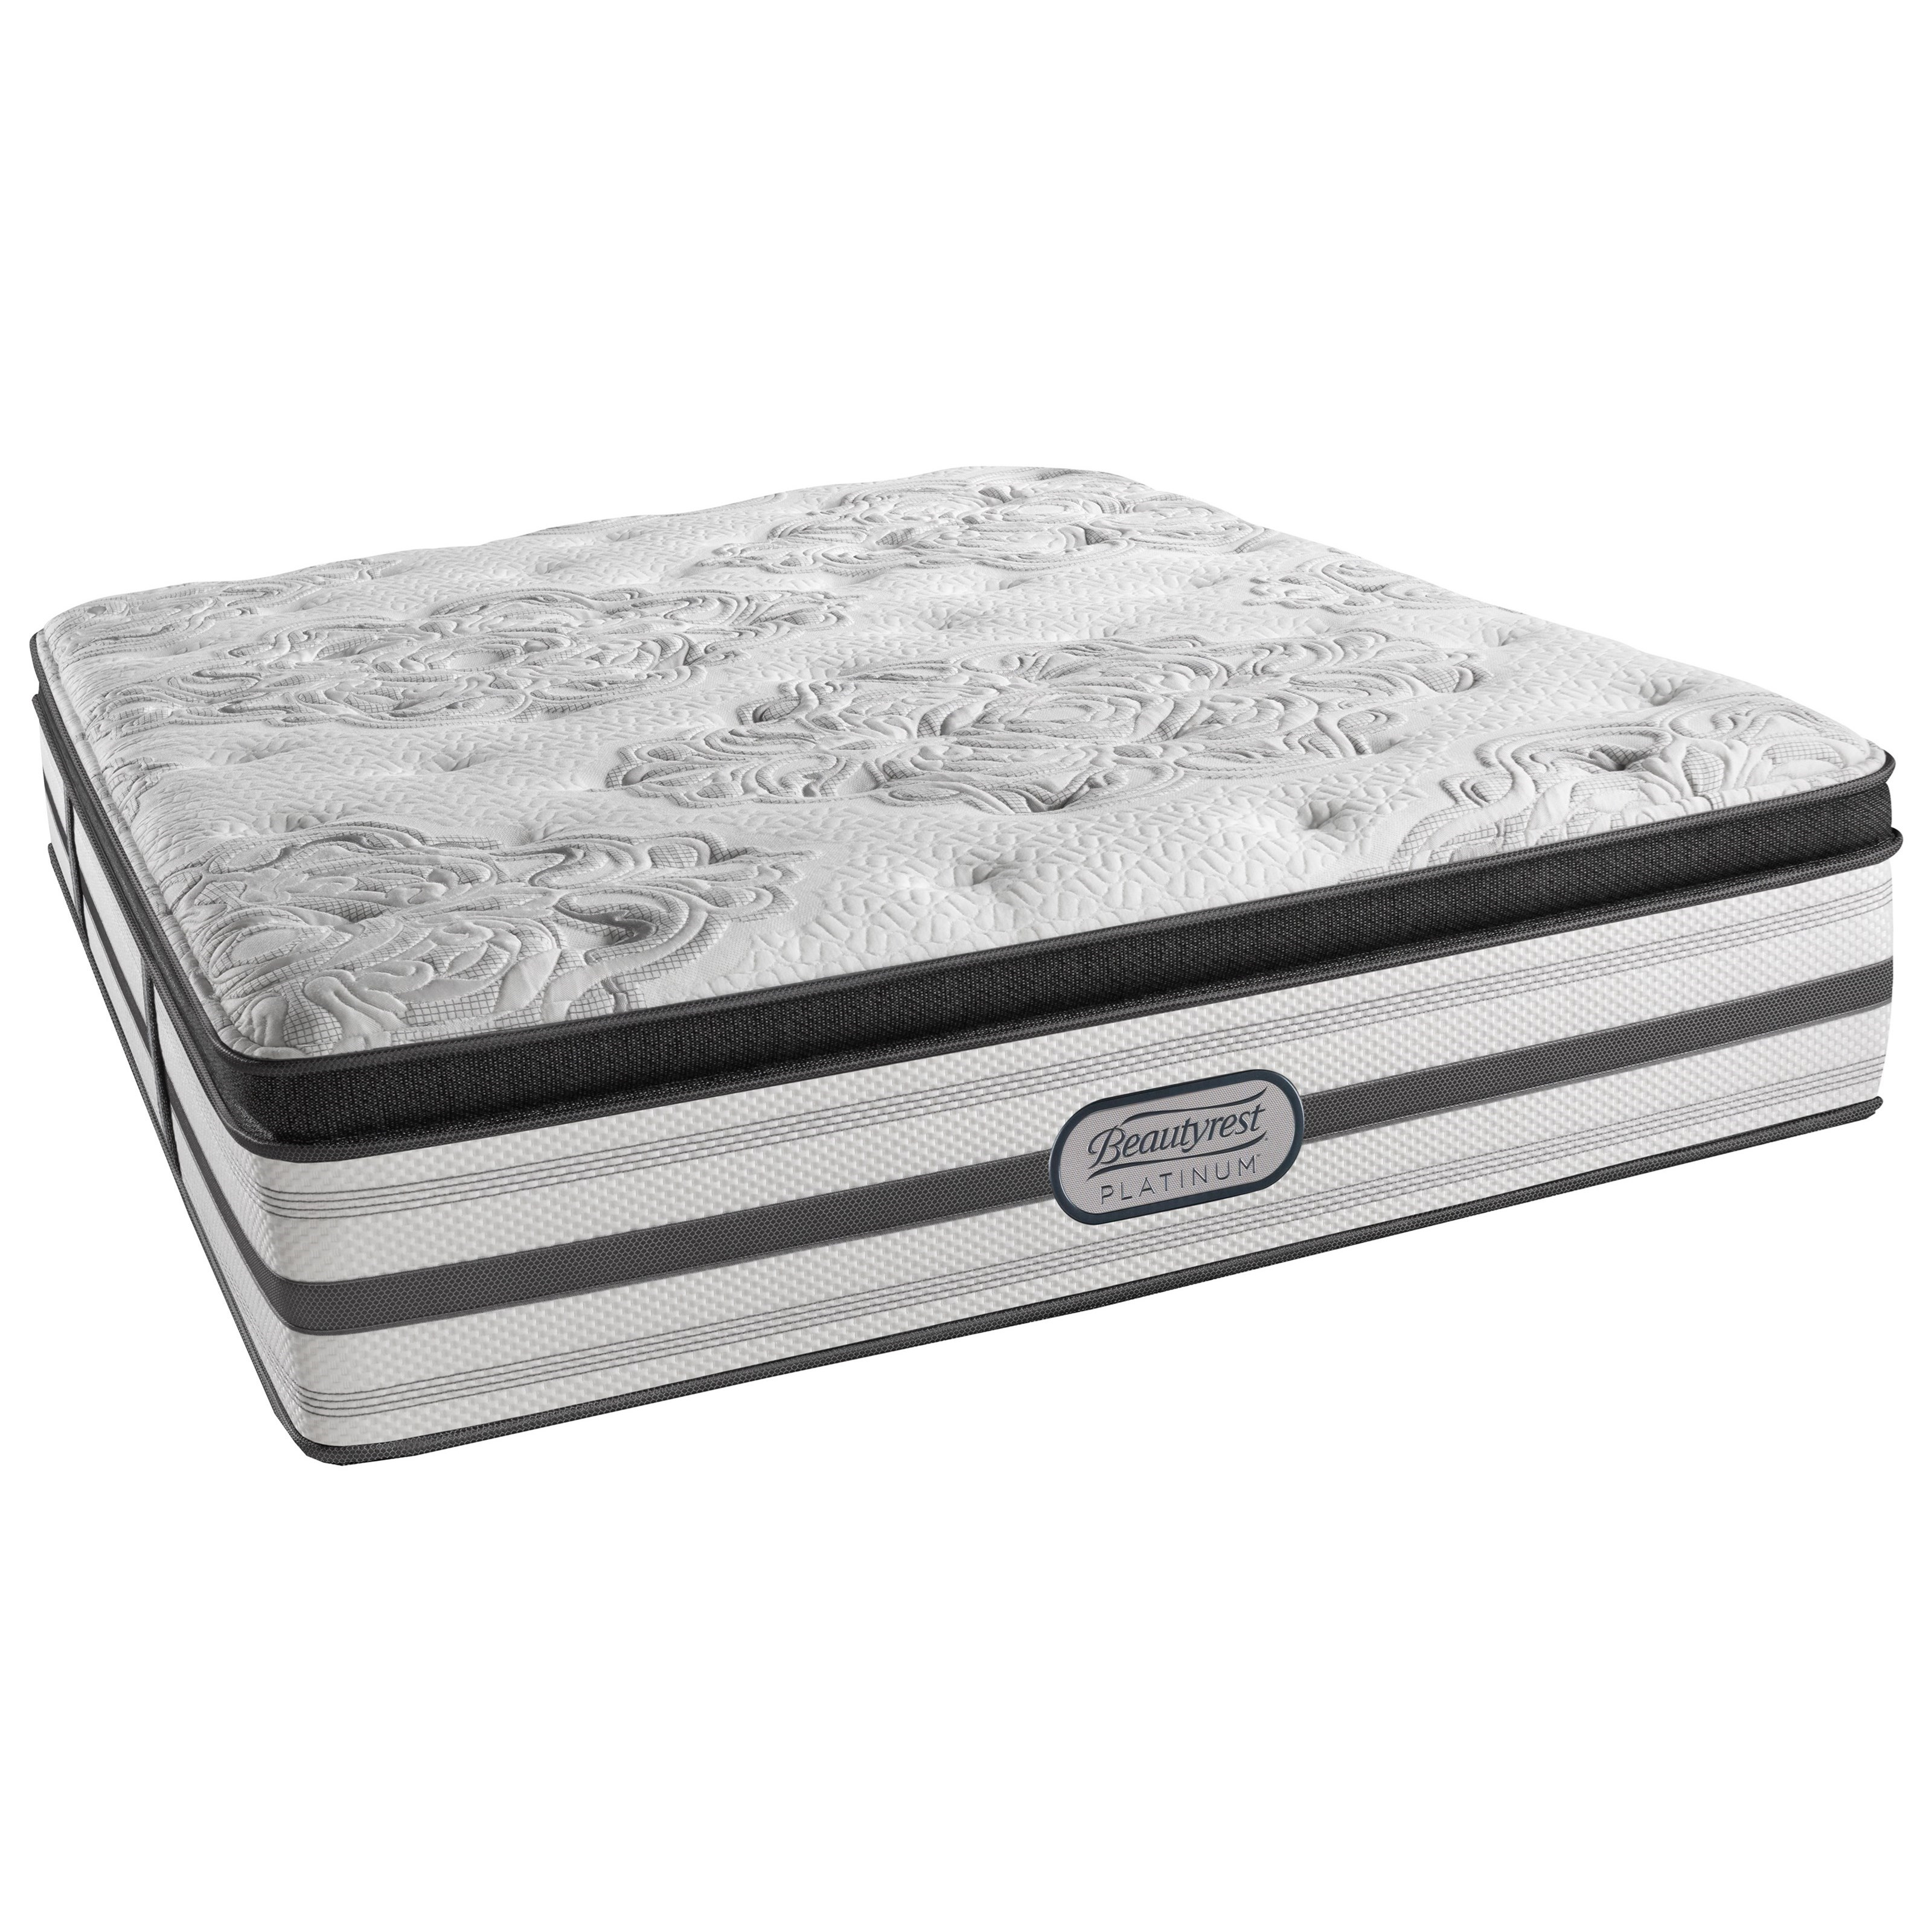 "Simmons Sonny Twin Luxury Firm PT 15"" Mattress - Item Number: LV3LFPT-T"